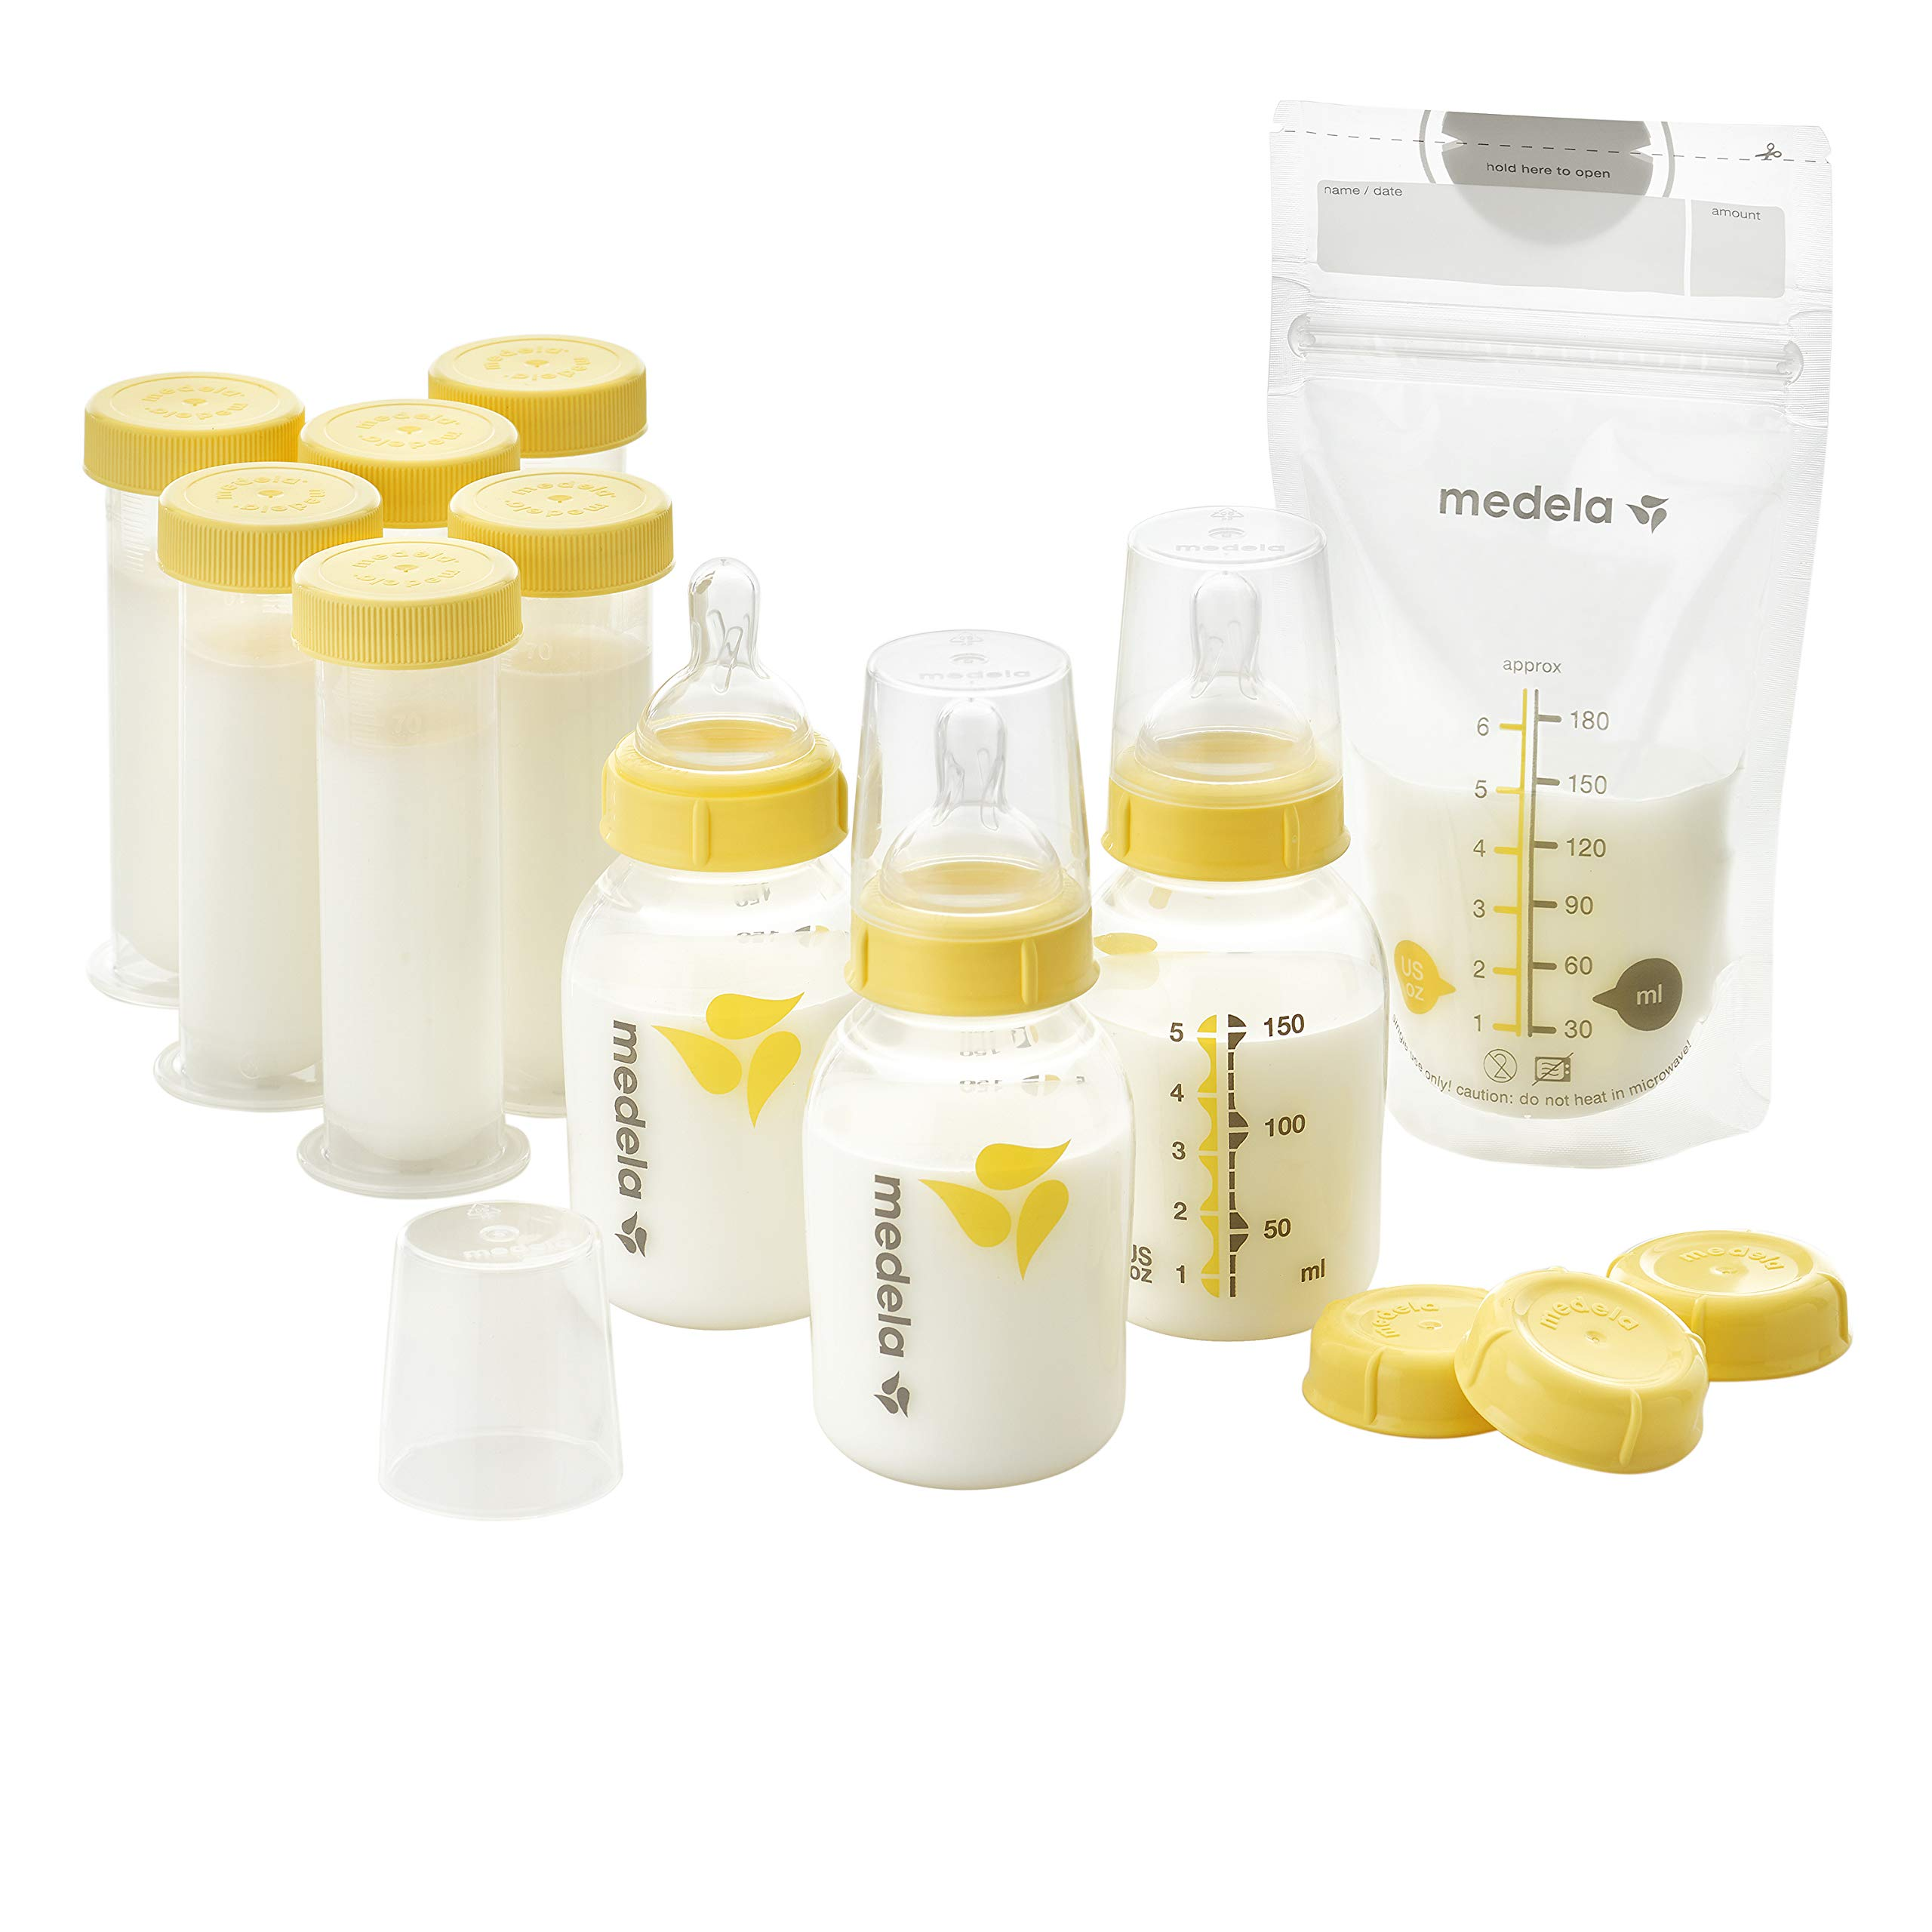 Medela Medela Breastfeeding Gift Set, Complete Breast Milk Storage System; Bottles, Nipples, Travel Caps, Breast Milk Storage Bags, More; Made Without BPA